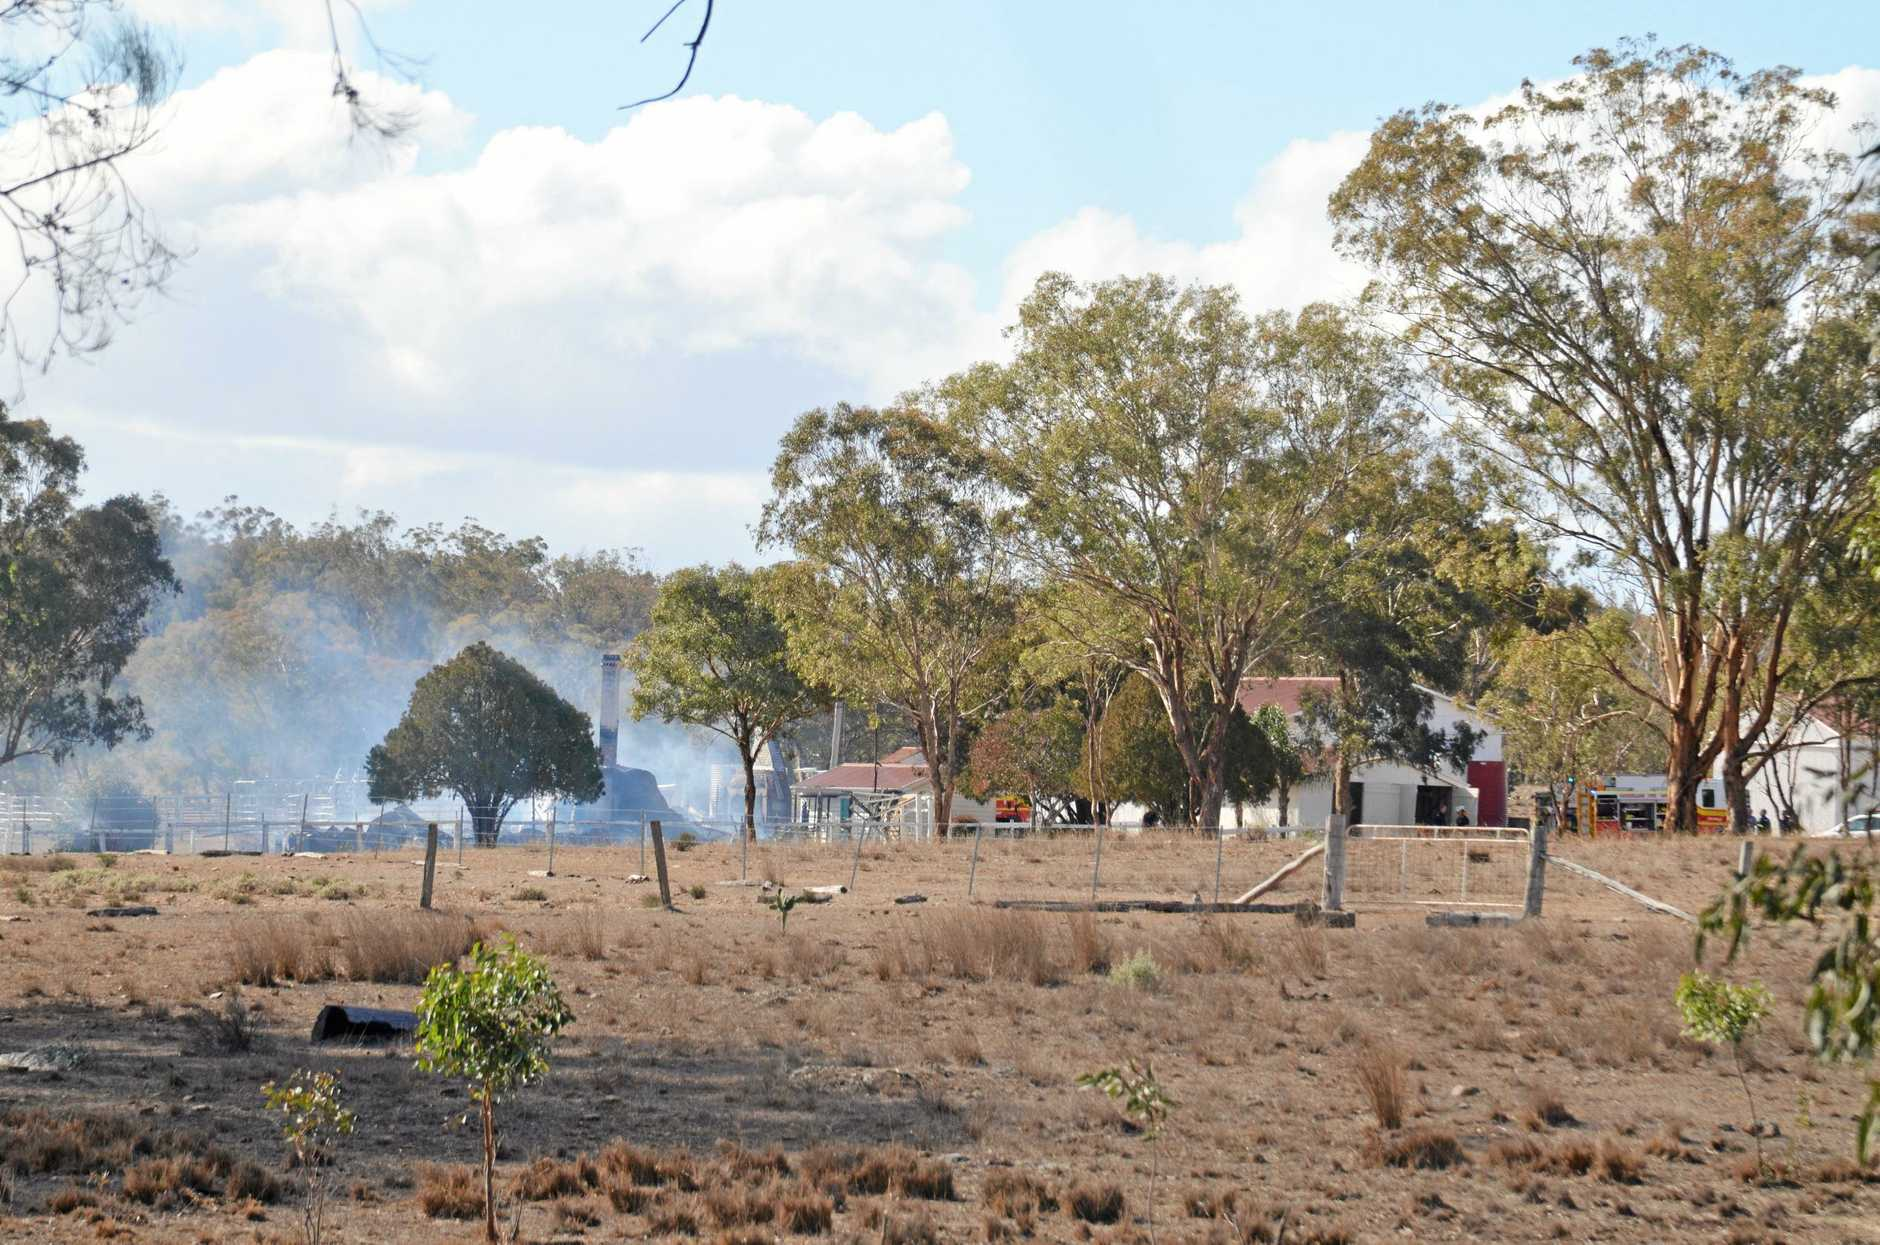 Flames engulfed Oaklands Homestead at Karara. Crews were called to the scene on Toowoomba-Karara Rd about 11.30am.